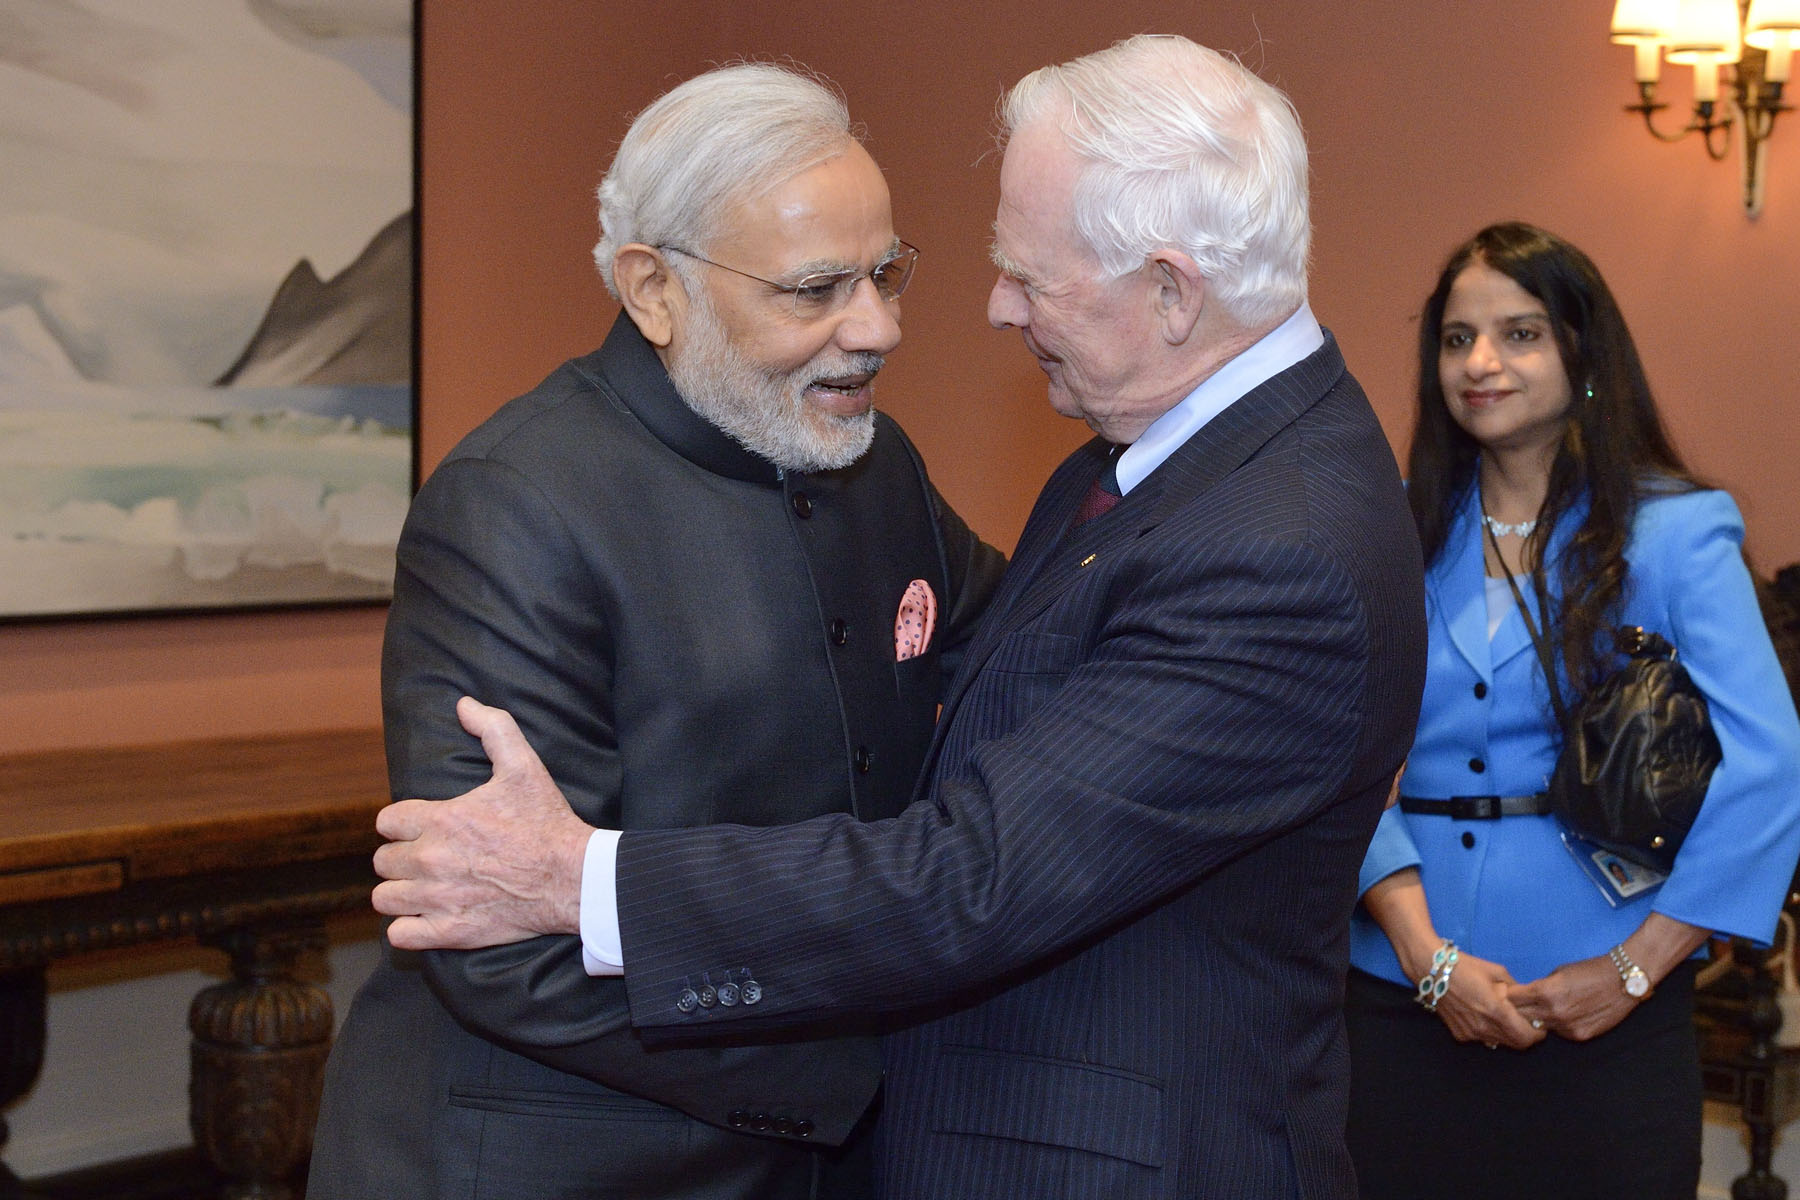 His Excellency the Right Honourable David Johnston, Governor General of Canada, met with His Excellency Narendra Modi, Prime Minister of the Republic of India, at Rideau Hall, on April 15, 2015.